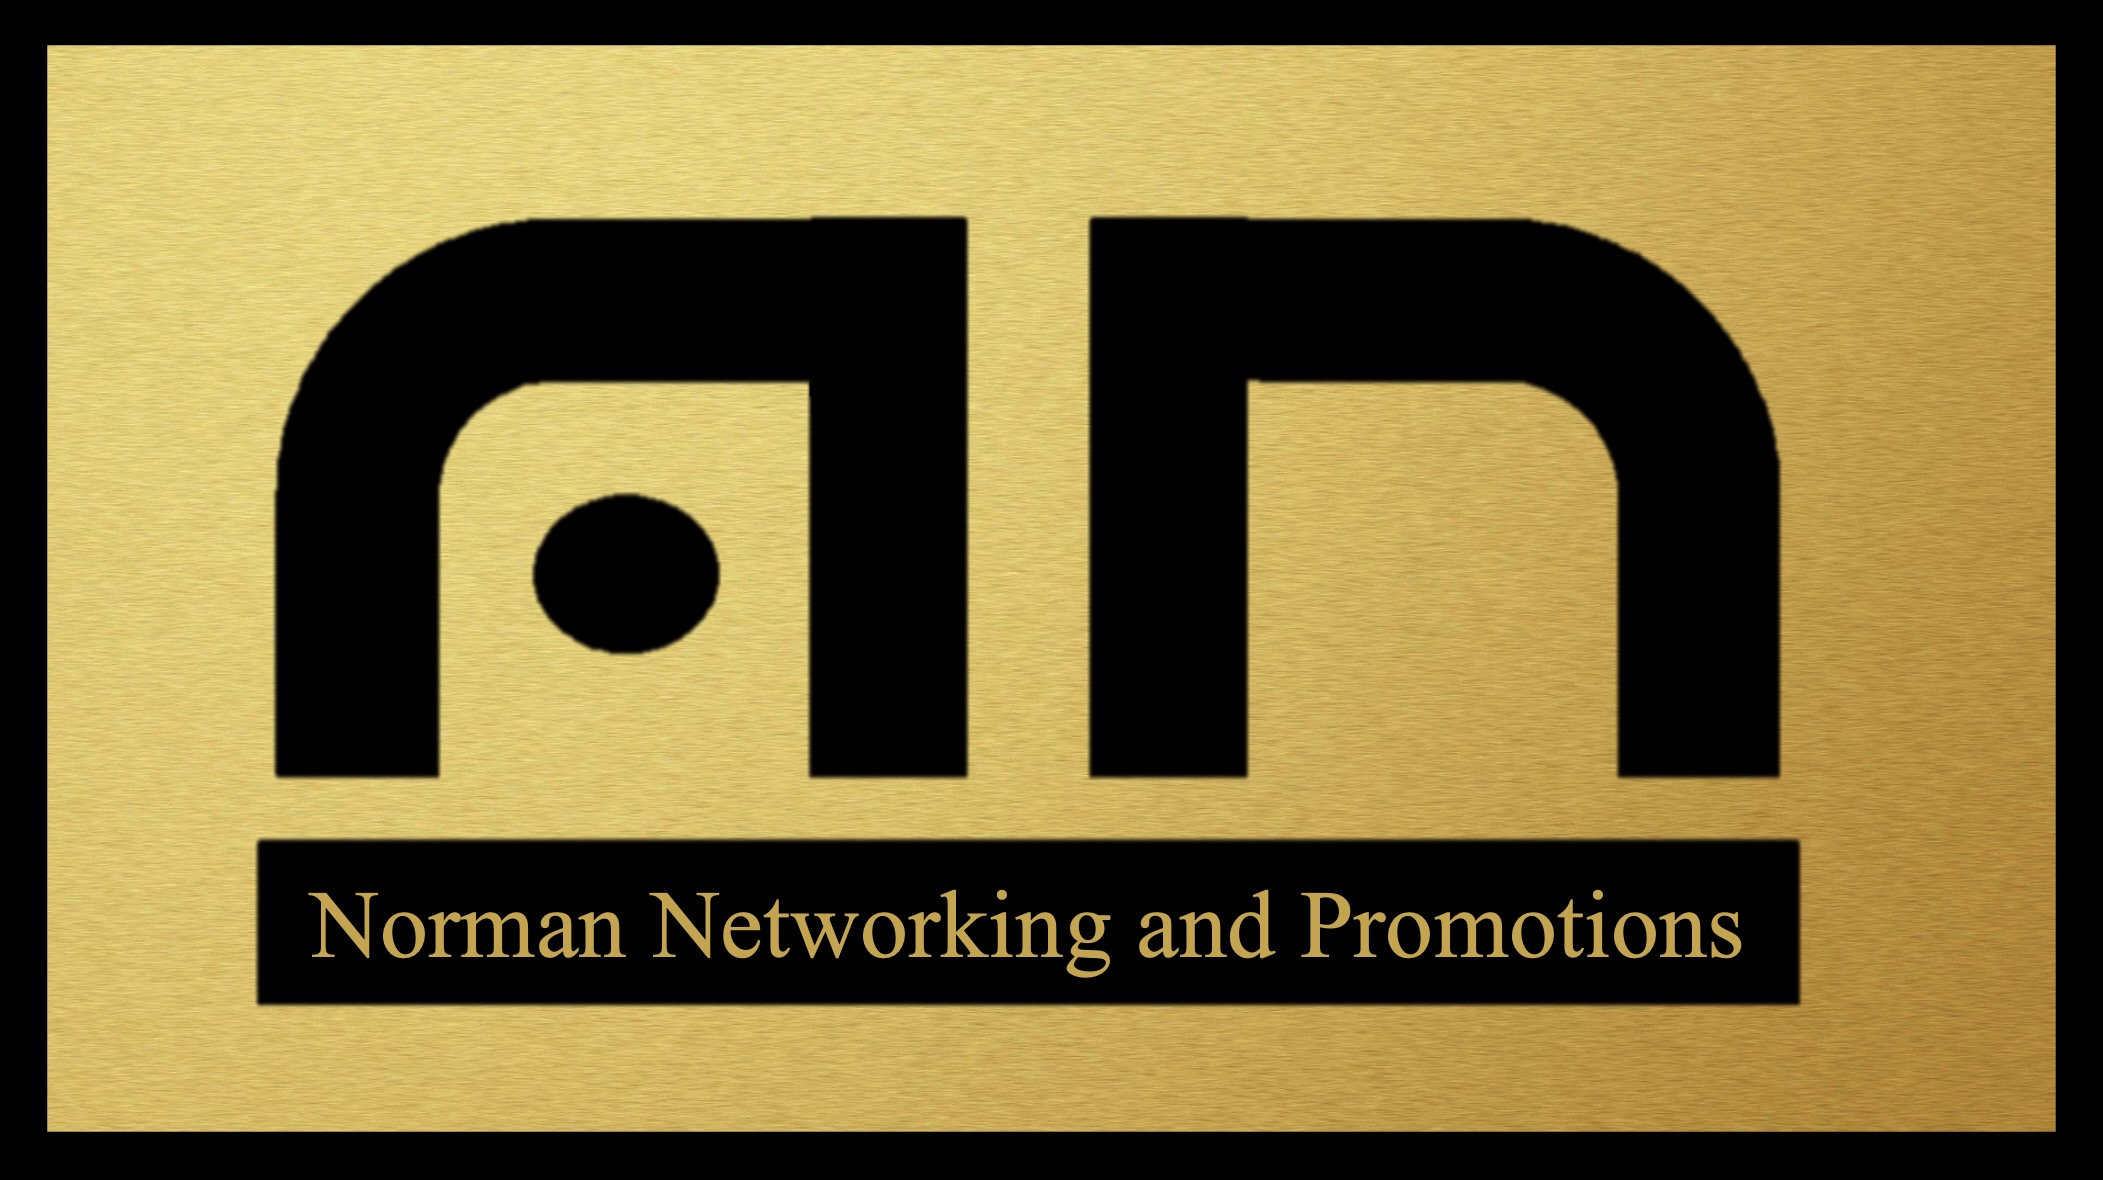 Norman Networking and Promotions